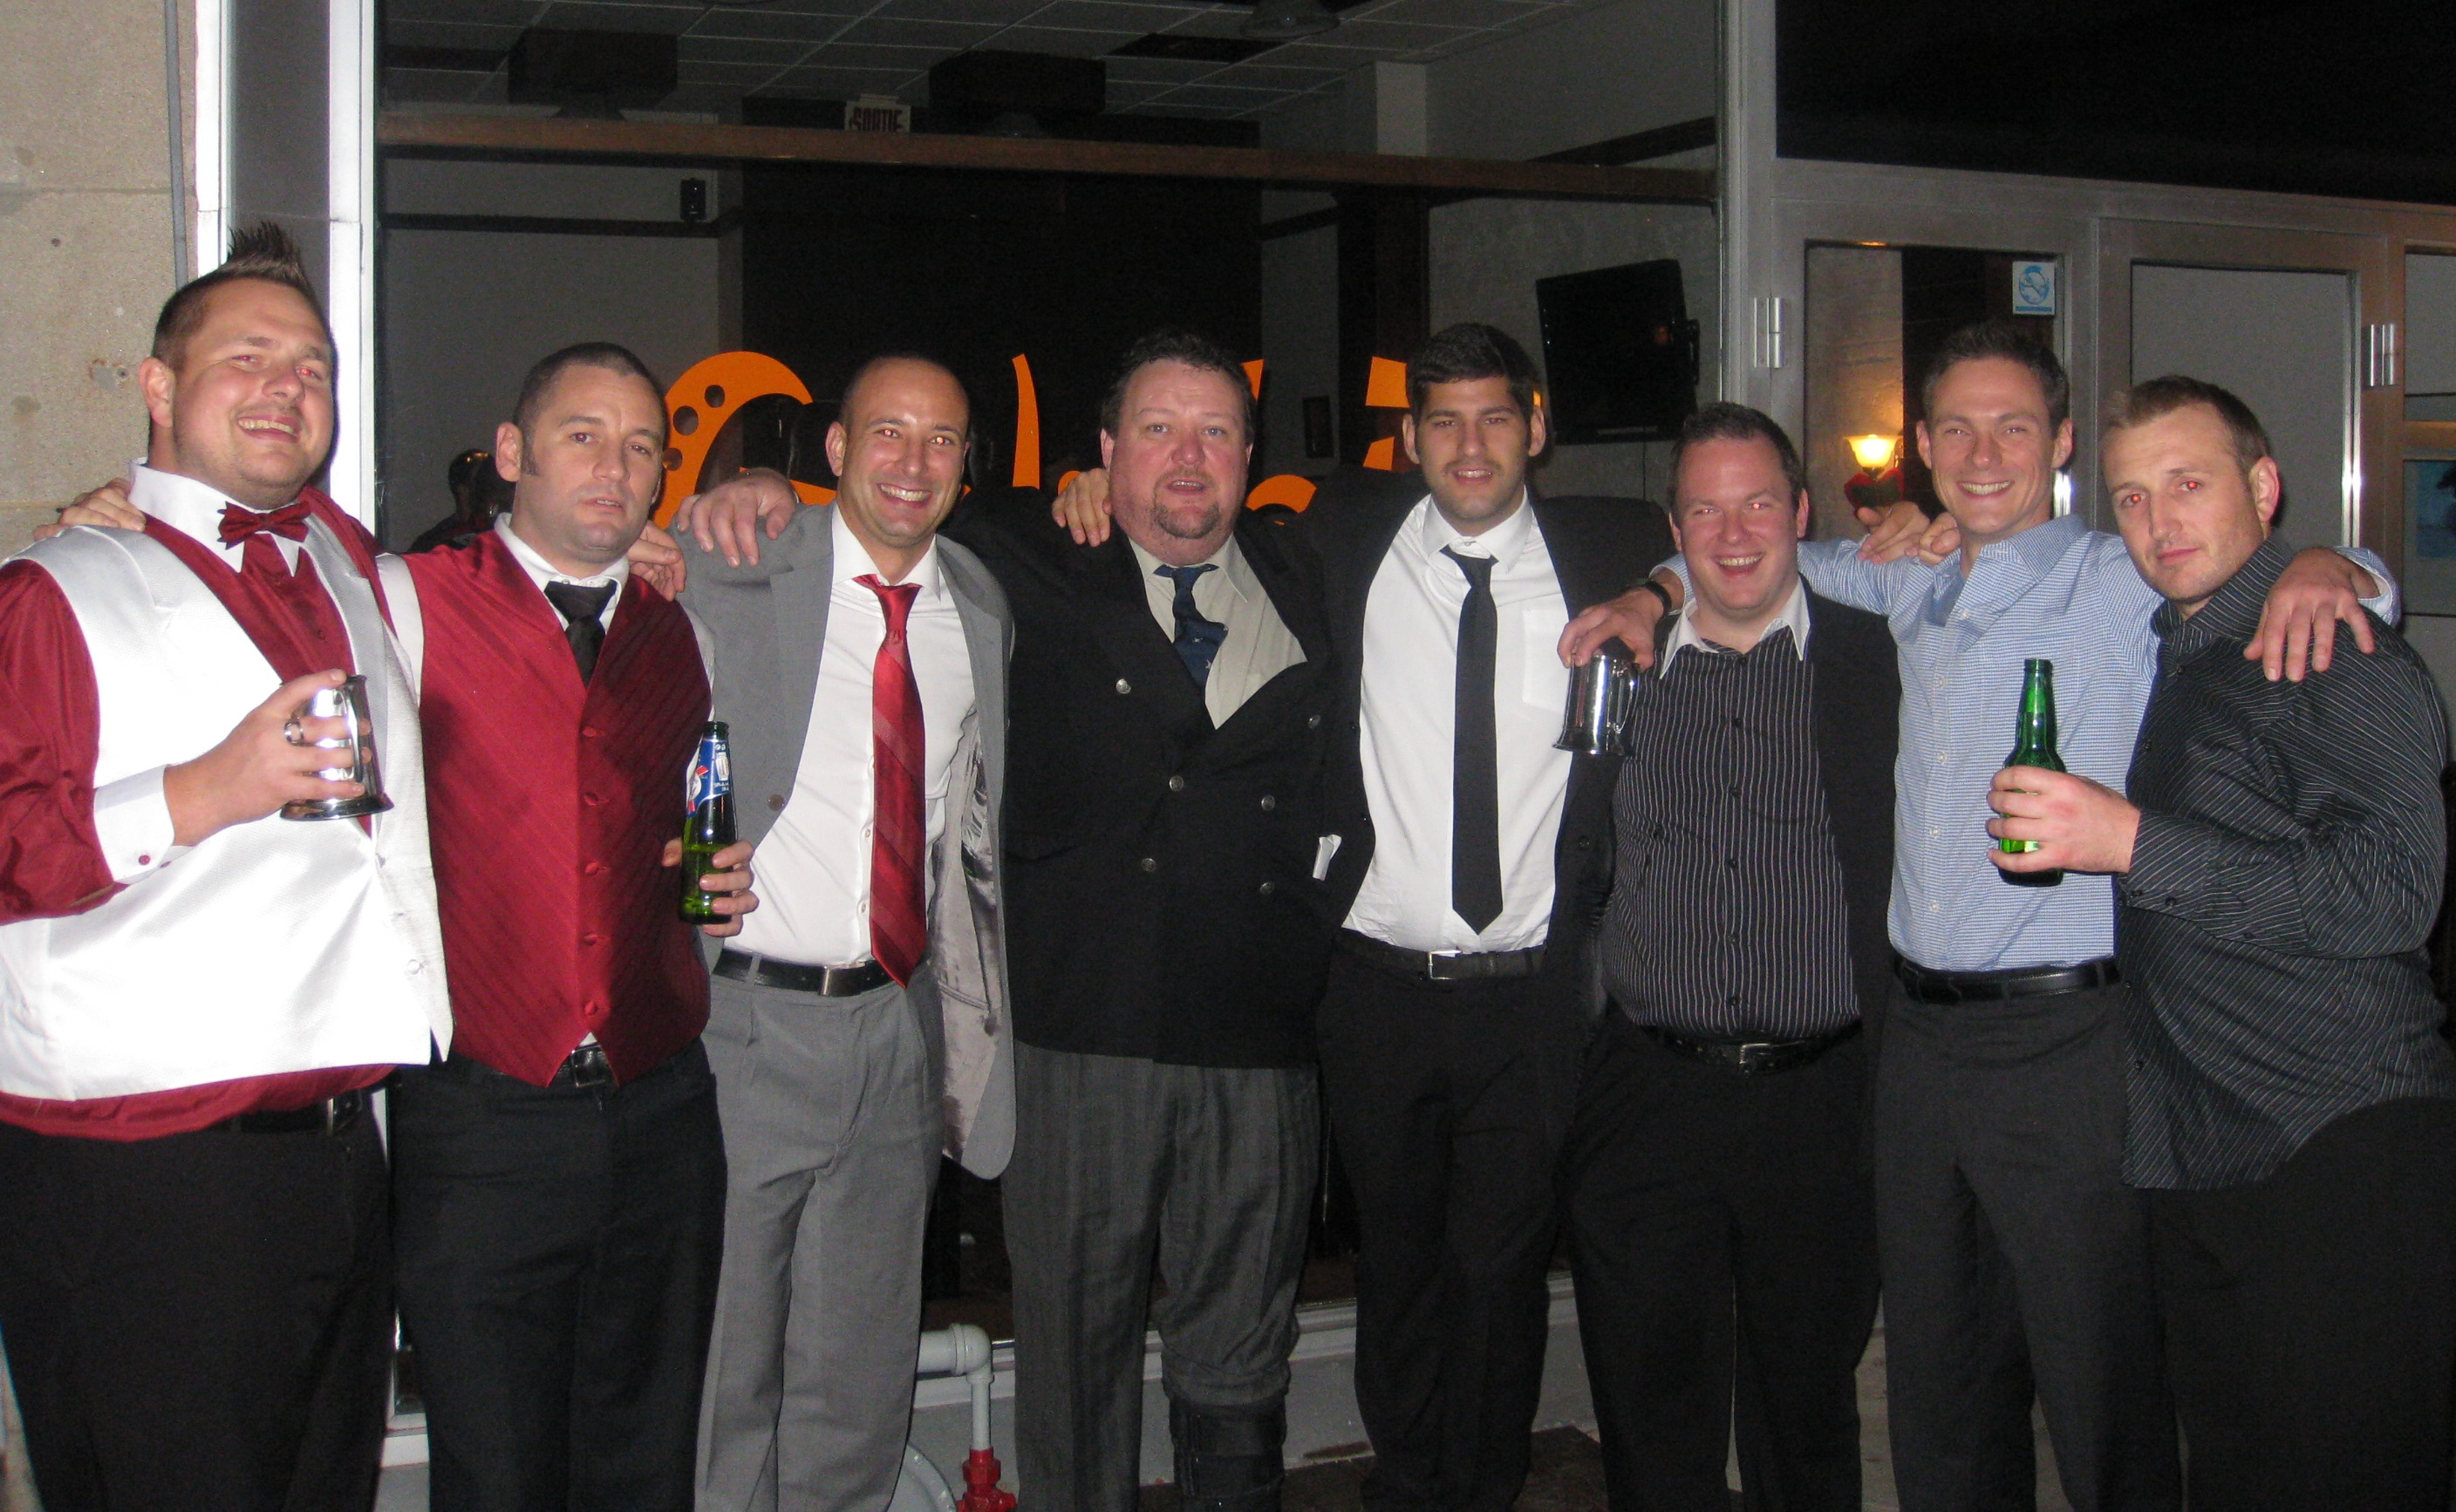 Exiles-Founding-Members-at-Banquet